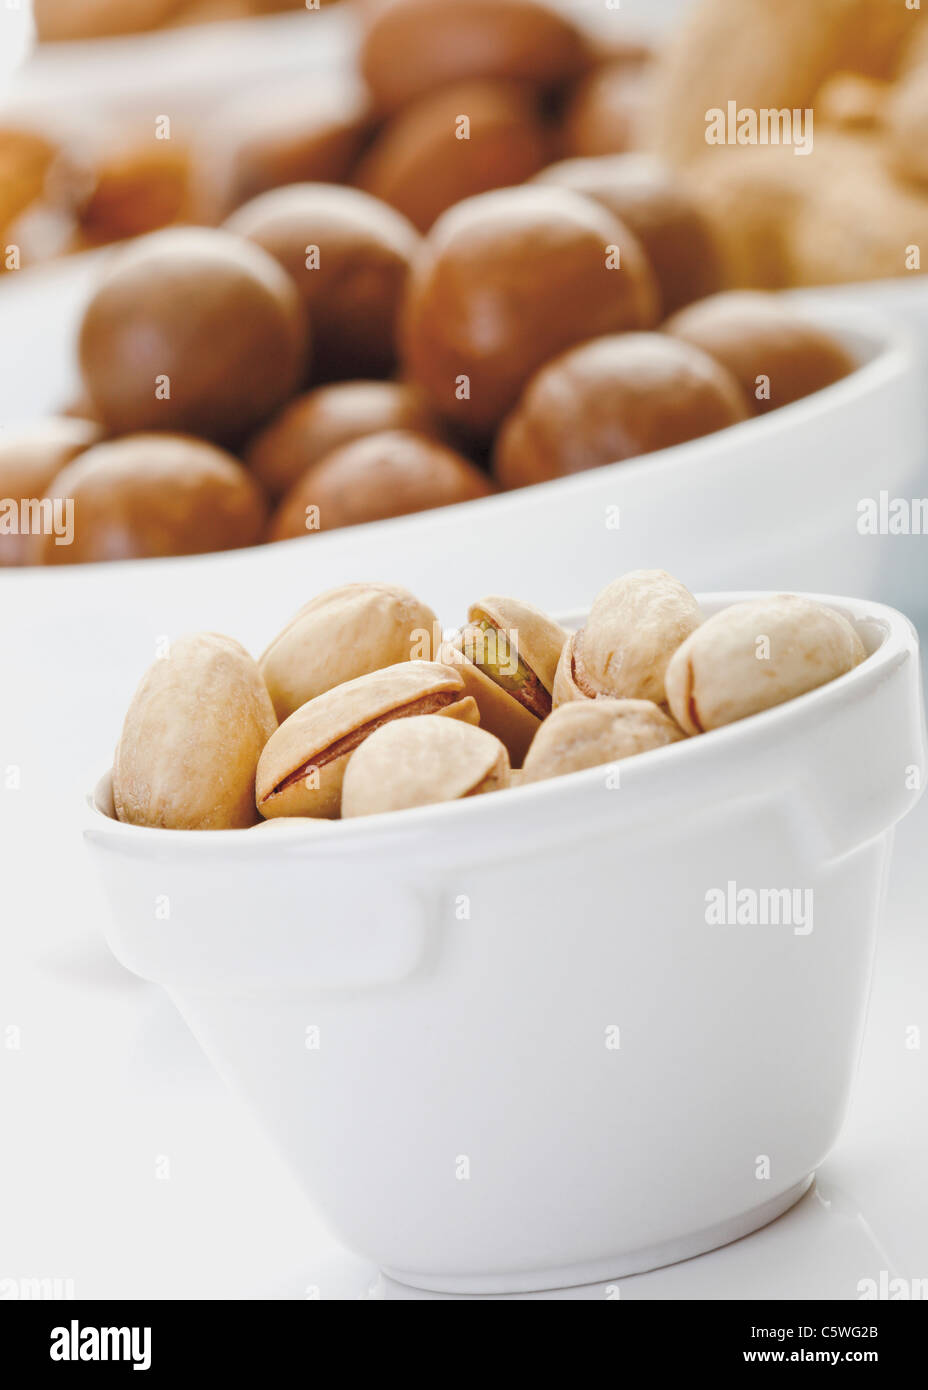 Pistachios and other nuts in bowls - Stock Image